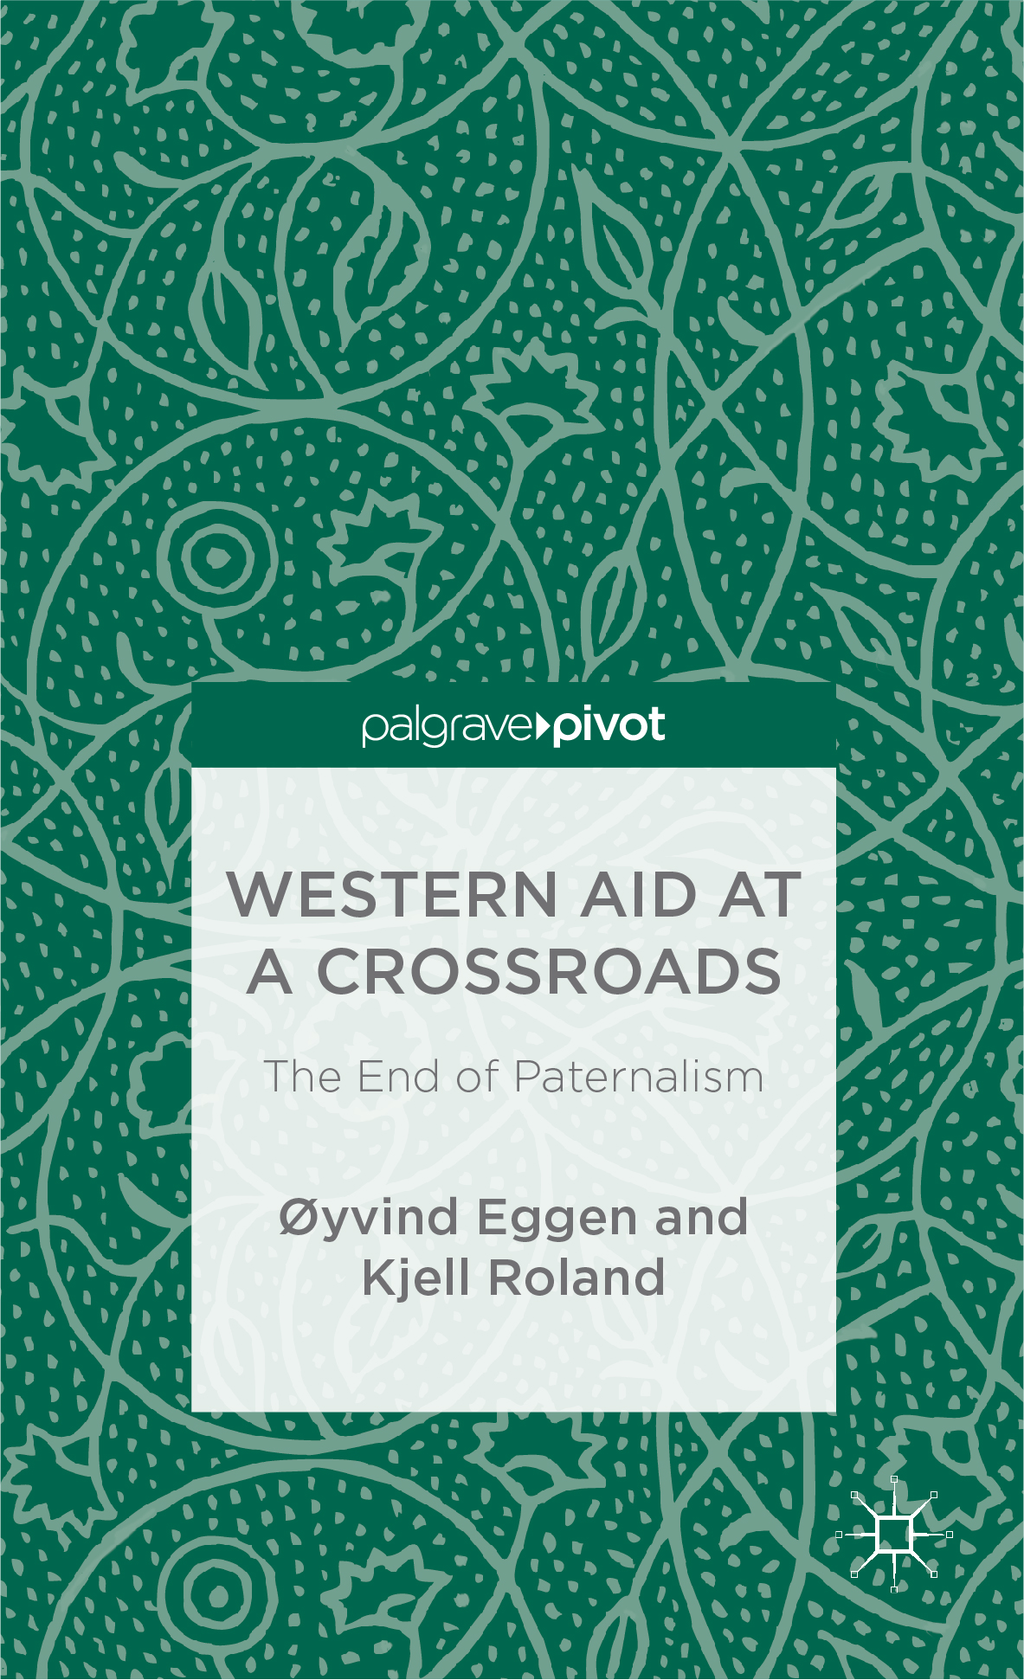 Western Aid at a Crossroads The End of Paternalism